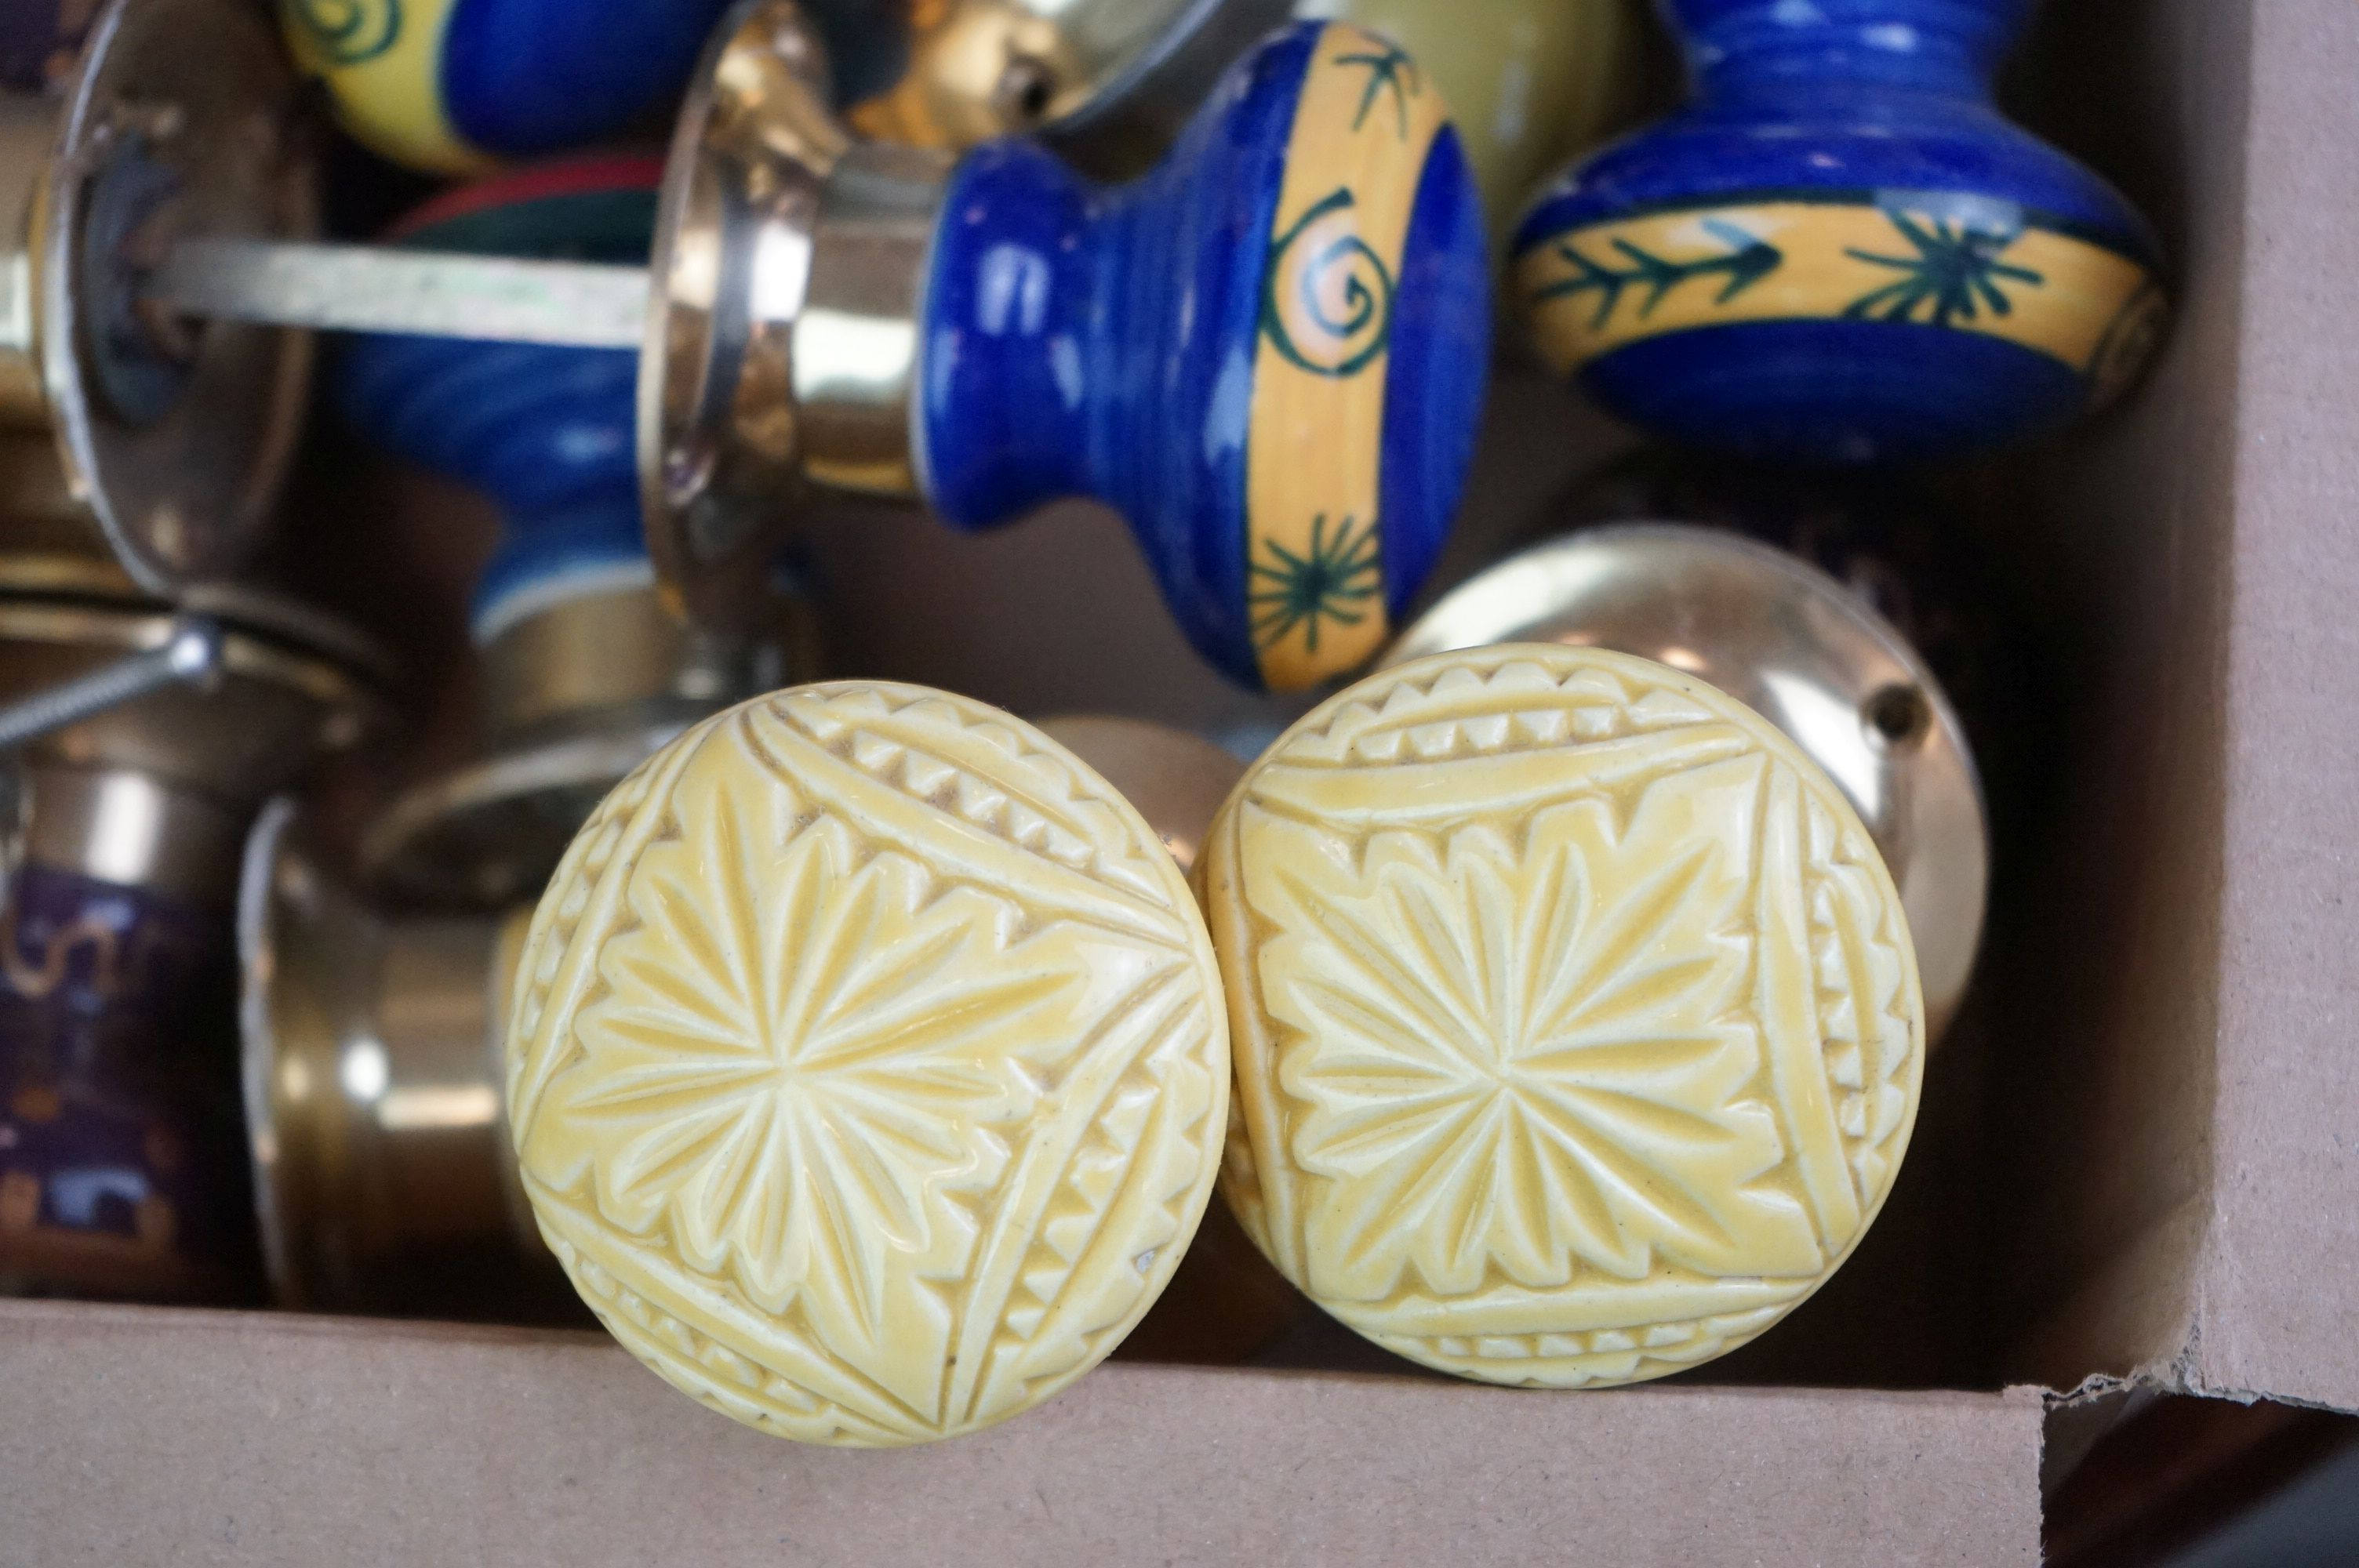 A collection of vintage ceramic door knobs. - Image 6 of 7